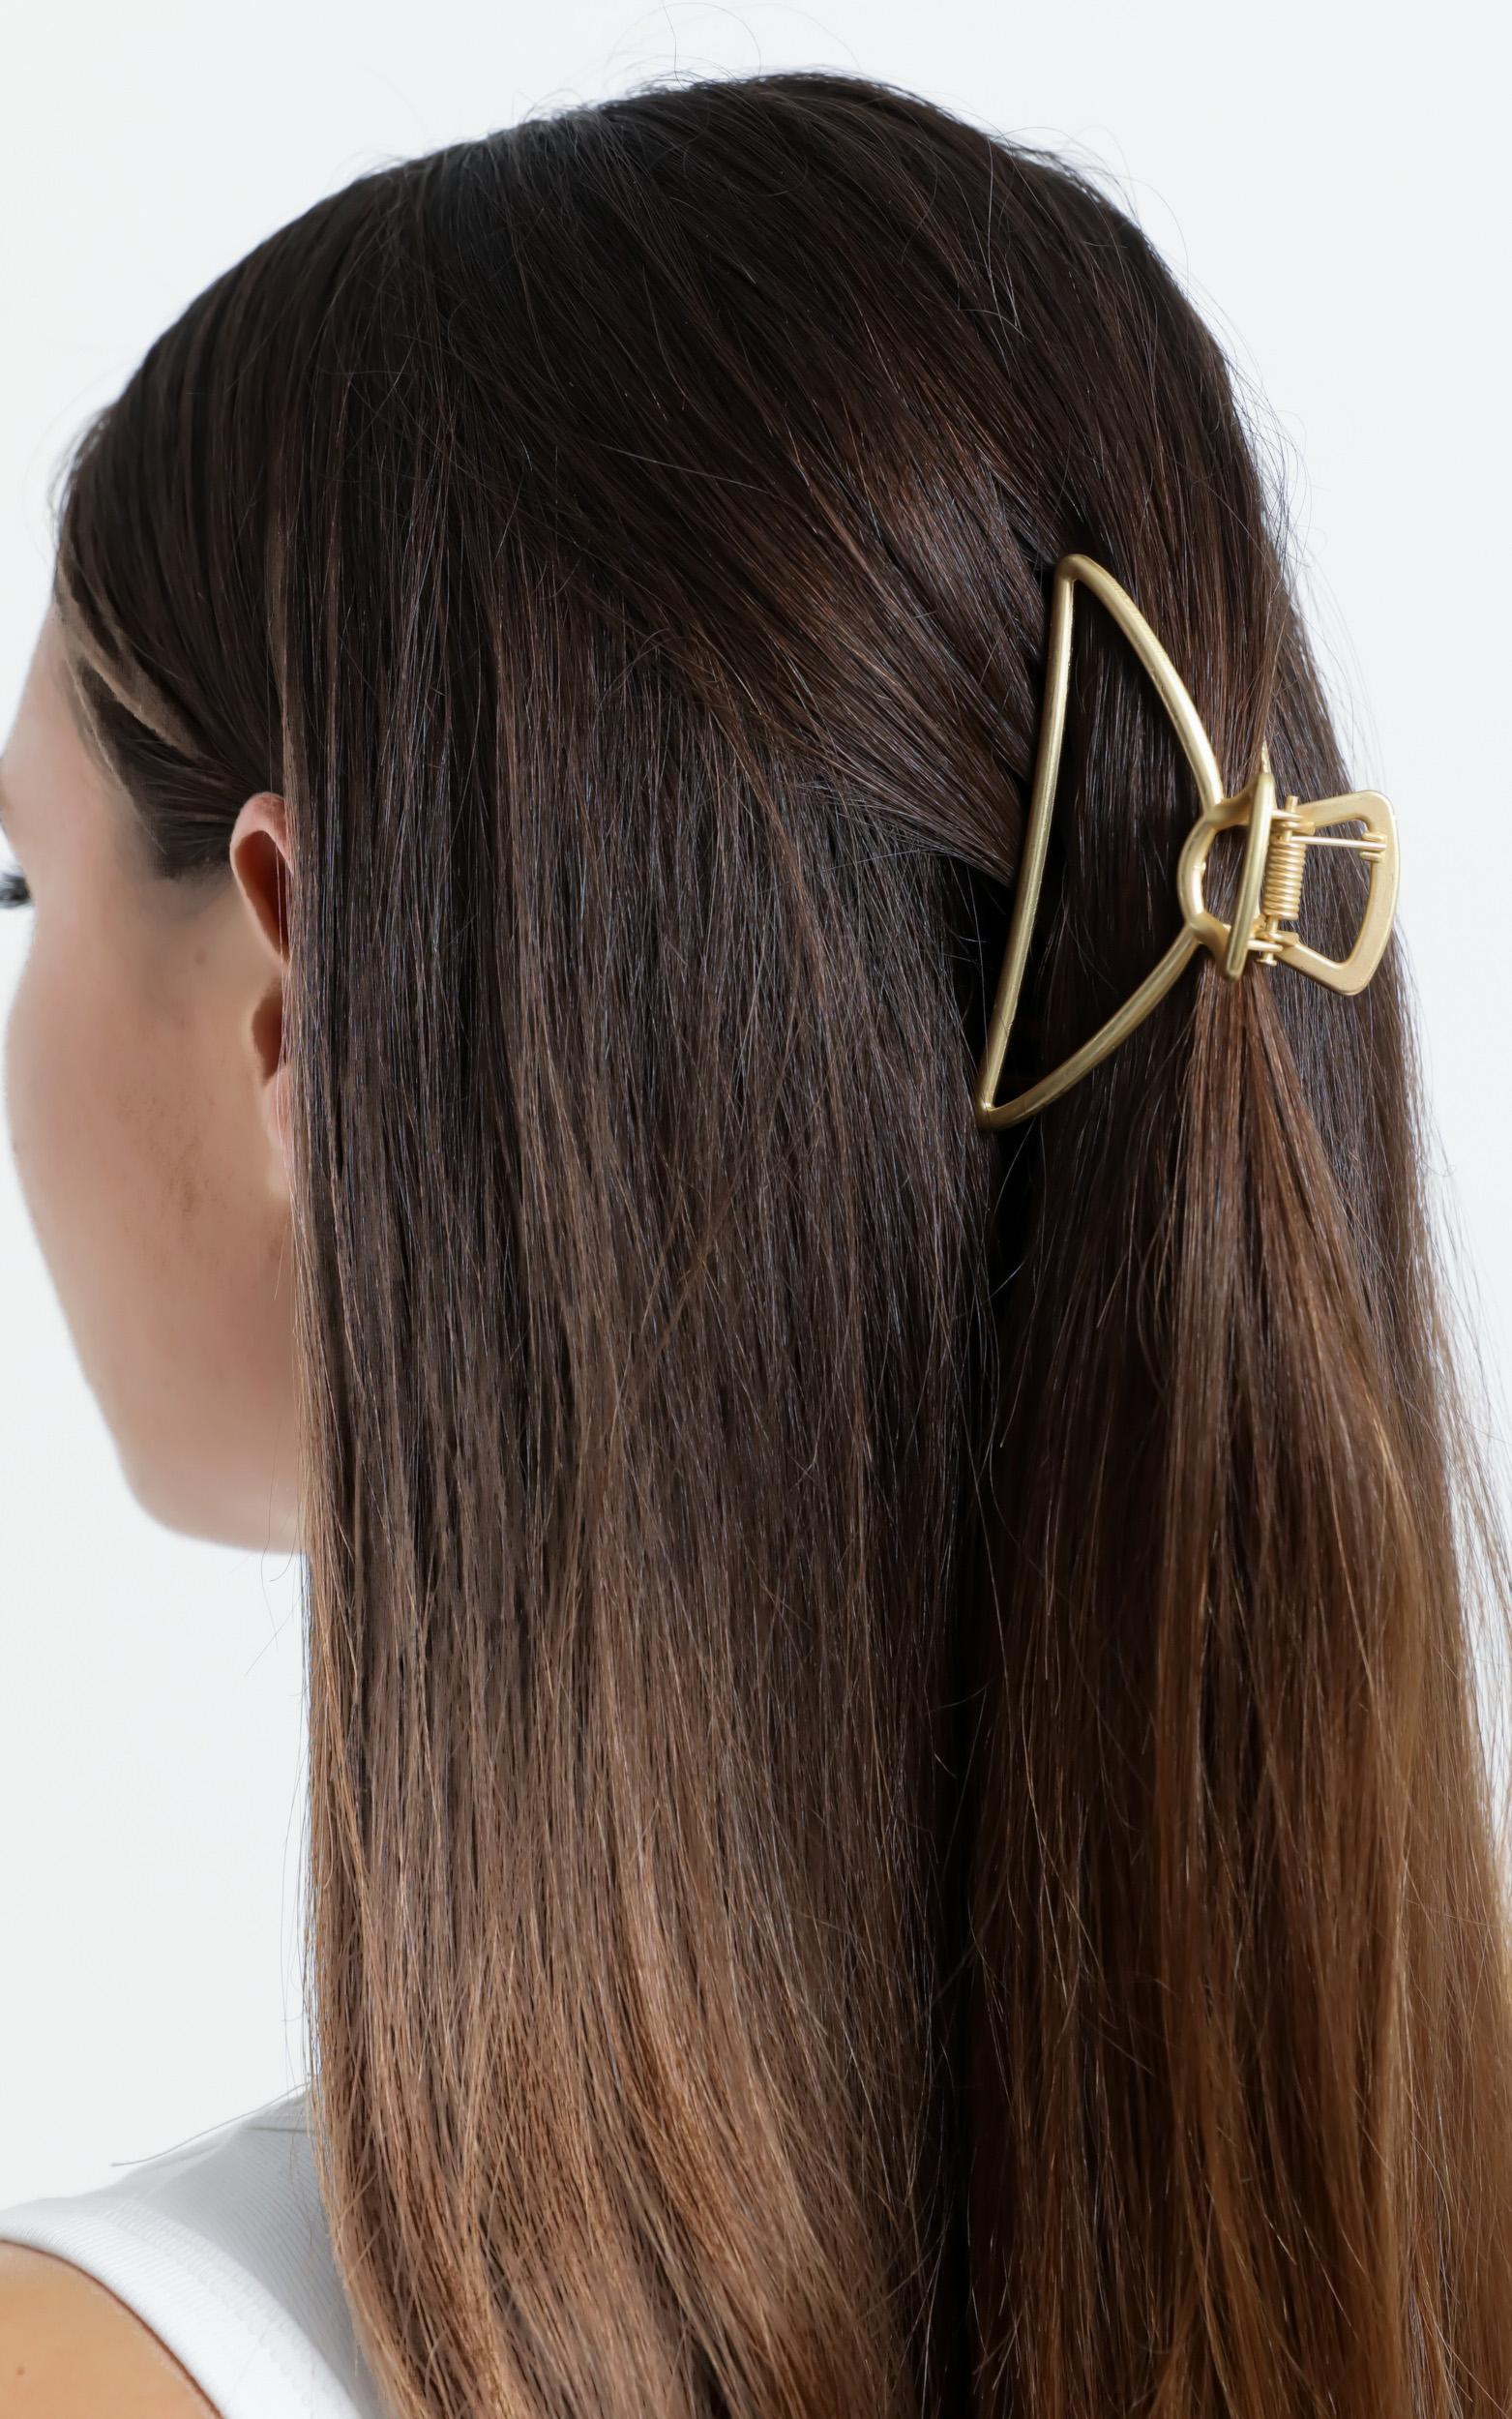 Summer Day Hair Clip in Gold, , hi-res image number null